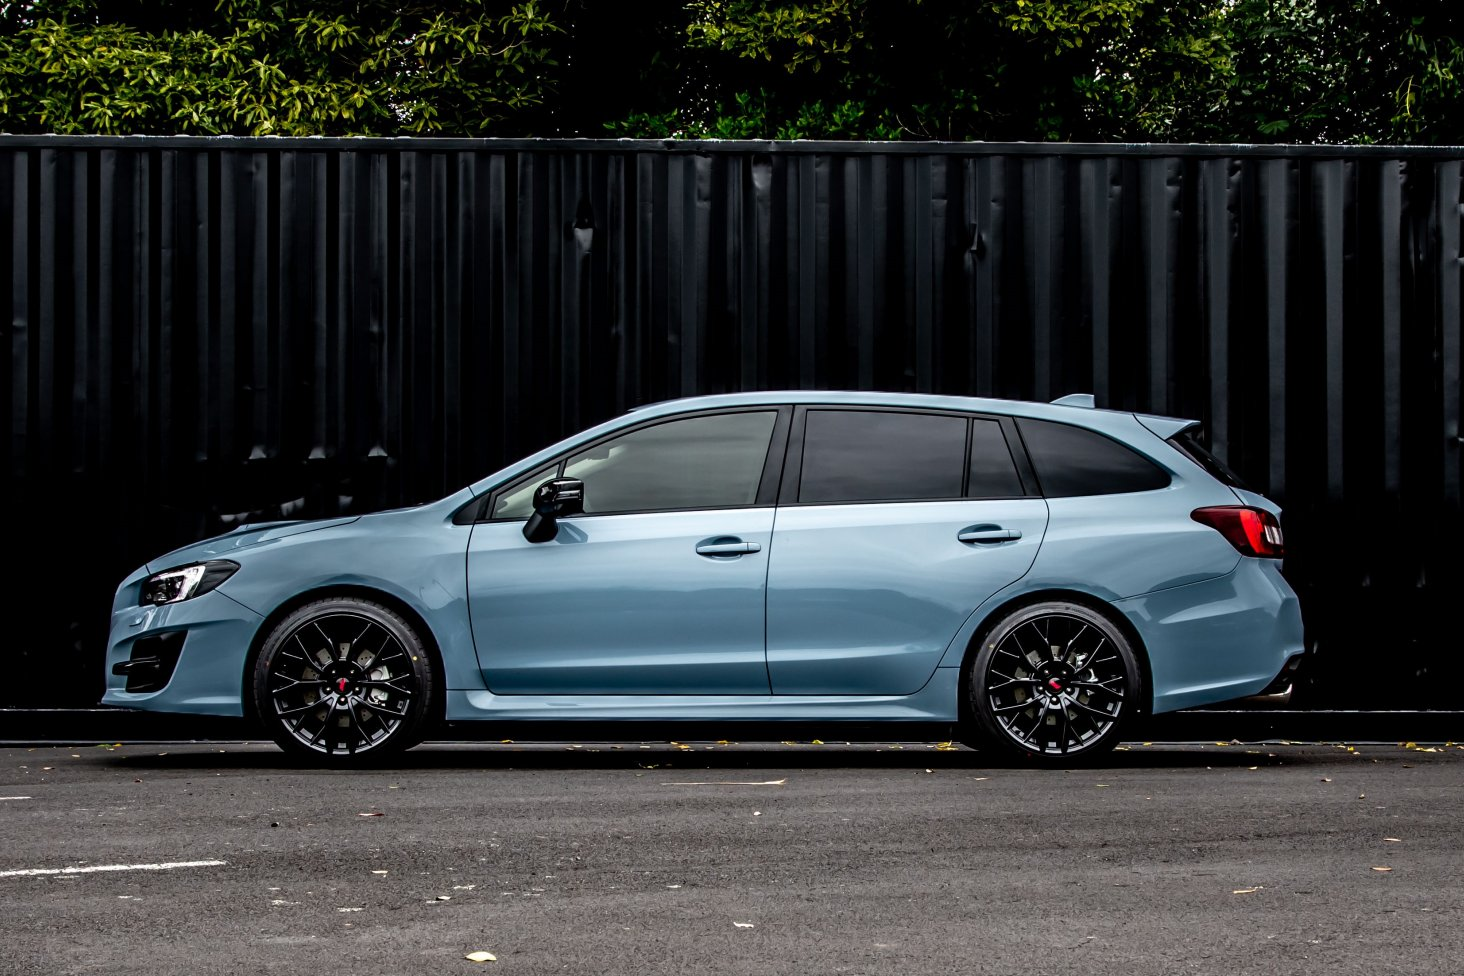 The 2020 Subaru Levorg with STI wheels and blacked out features